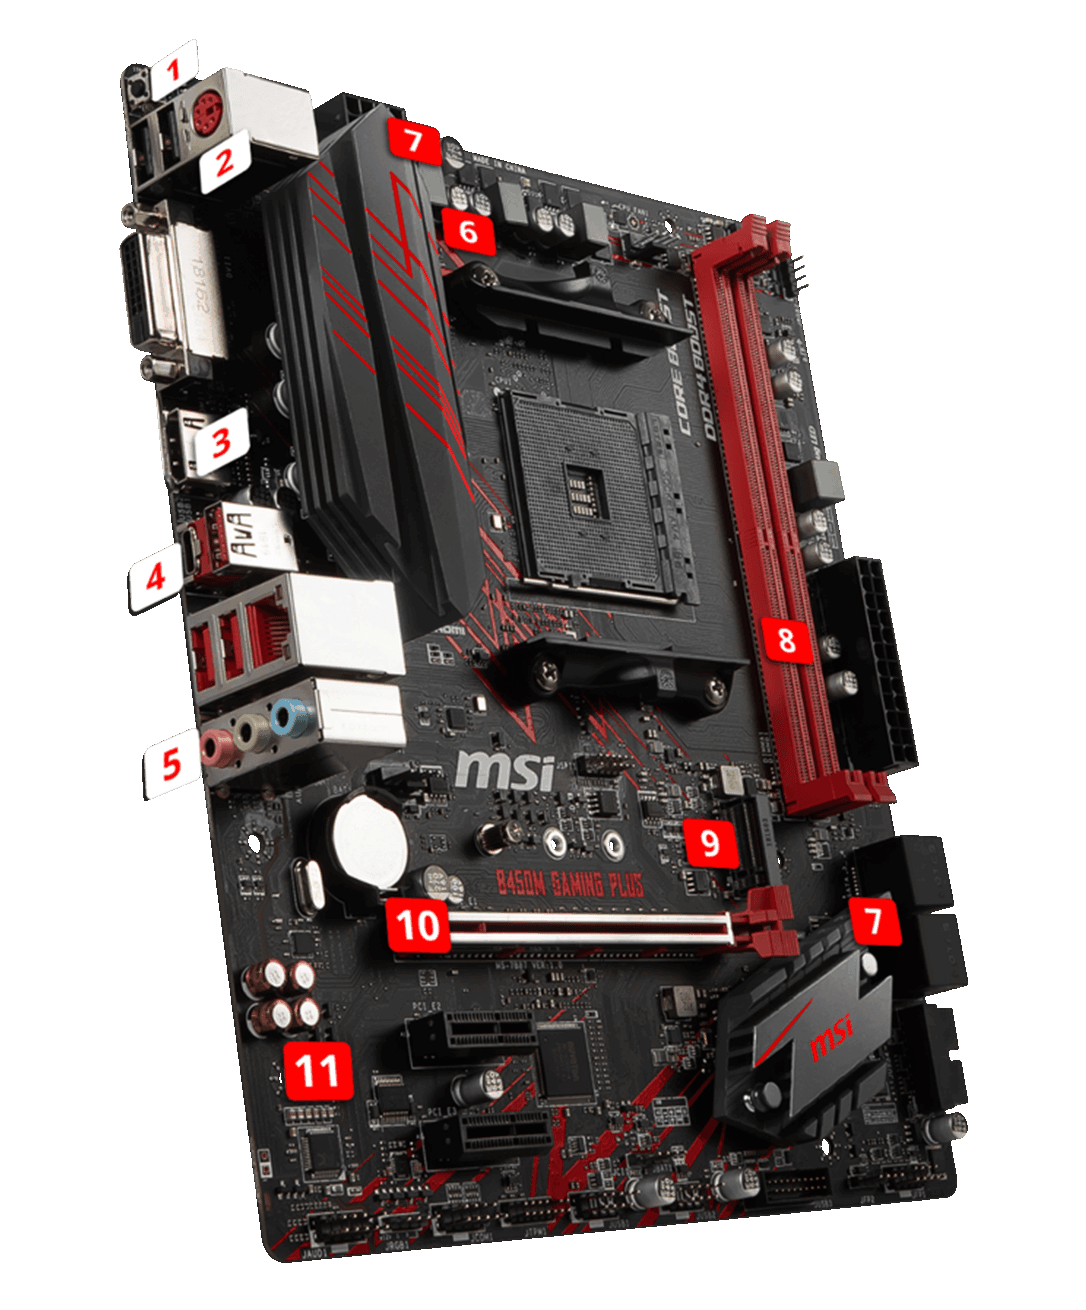 MSI B450m GAMING PLUS overview